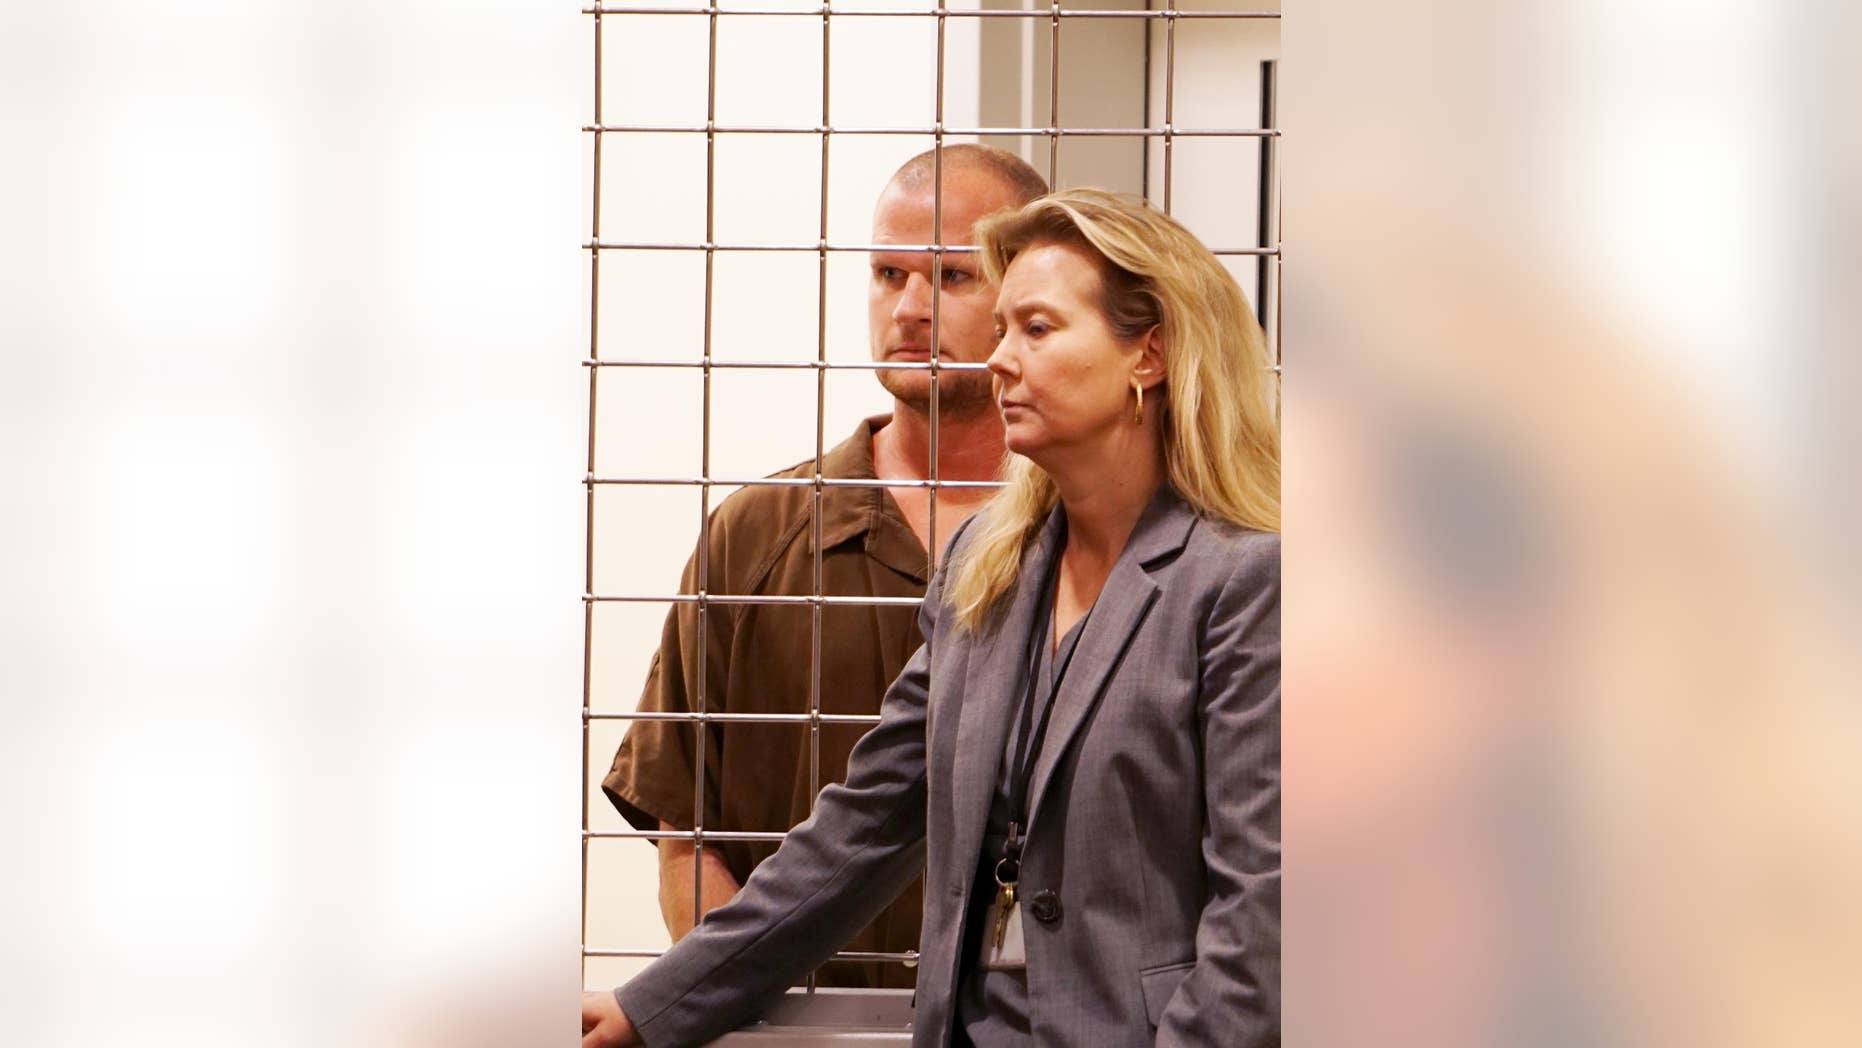 In a Monday, Sept. 12, 2016 photo, Seth Willis Pickering, 36, appears with LeeAnn Melton, Buncombe County public defender, in Buncombe County Court in Ashland, NC.  Pickering is charged first-degree murder in the death of his 6-year-old daughter, Lila Pickering. Pickering said he killed his daughter so that no one could take her from him again, a federal agent says in an affidavit. (Tonya Maxwell/Asheville Citizen-Times via AP)